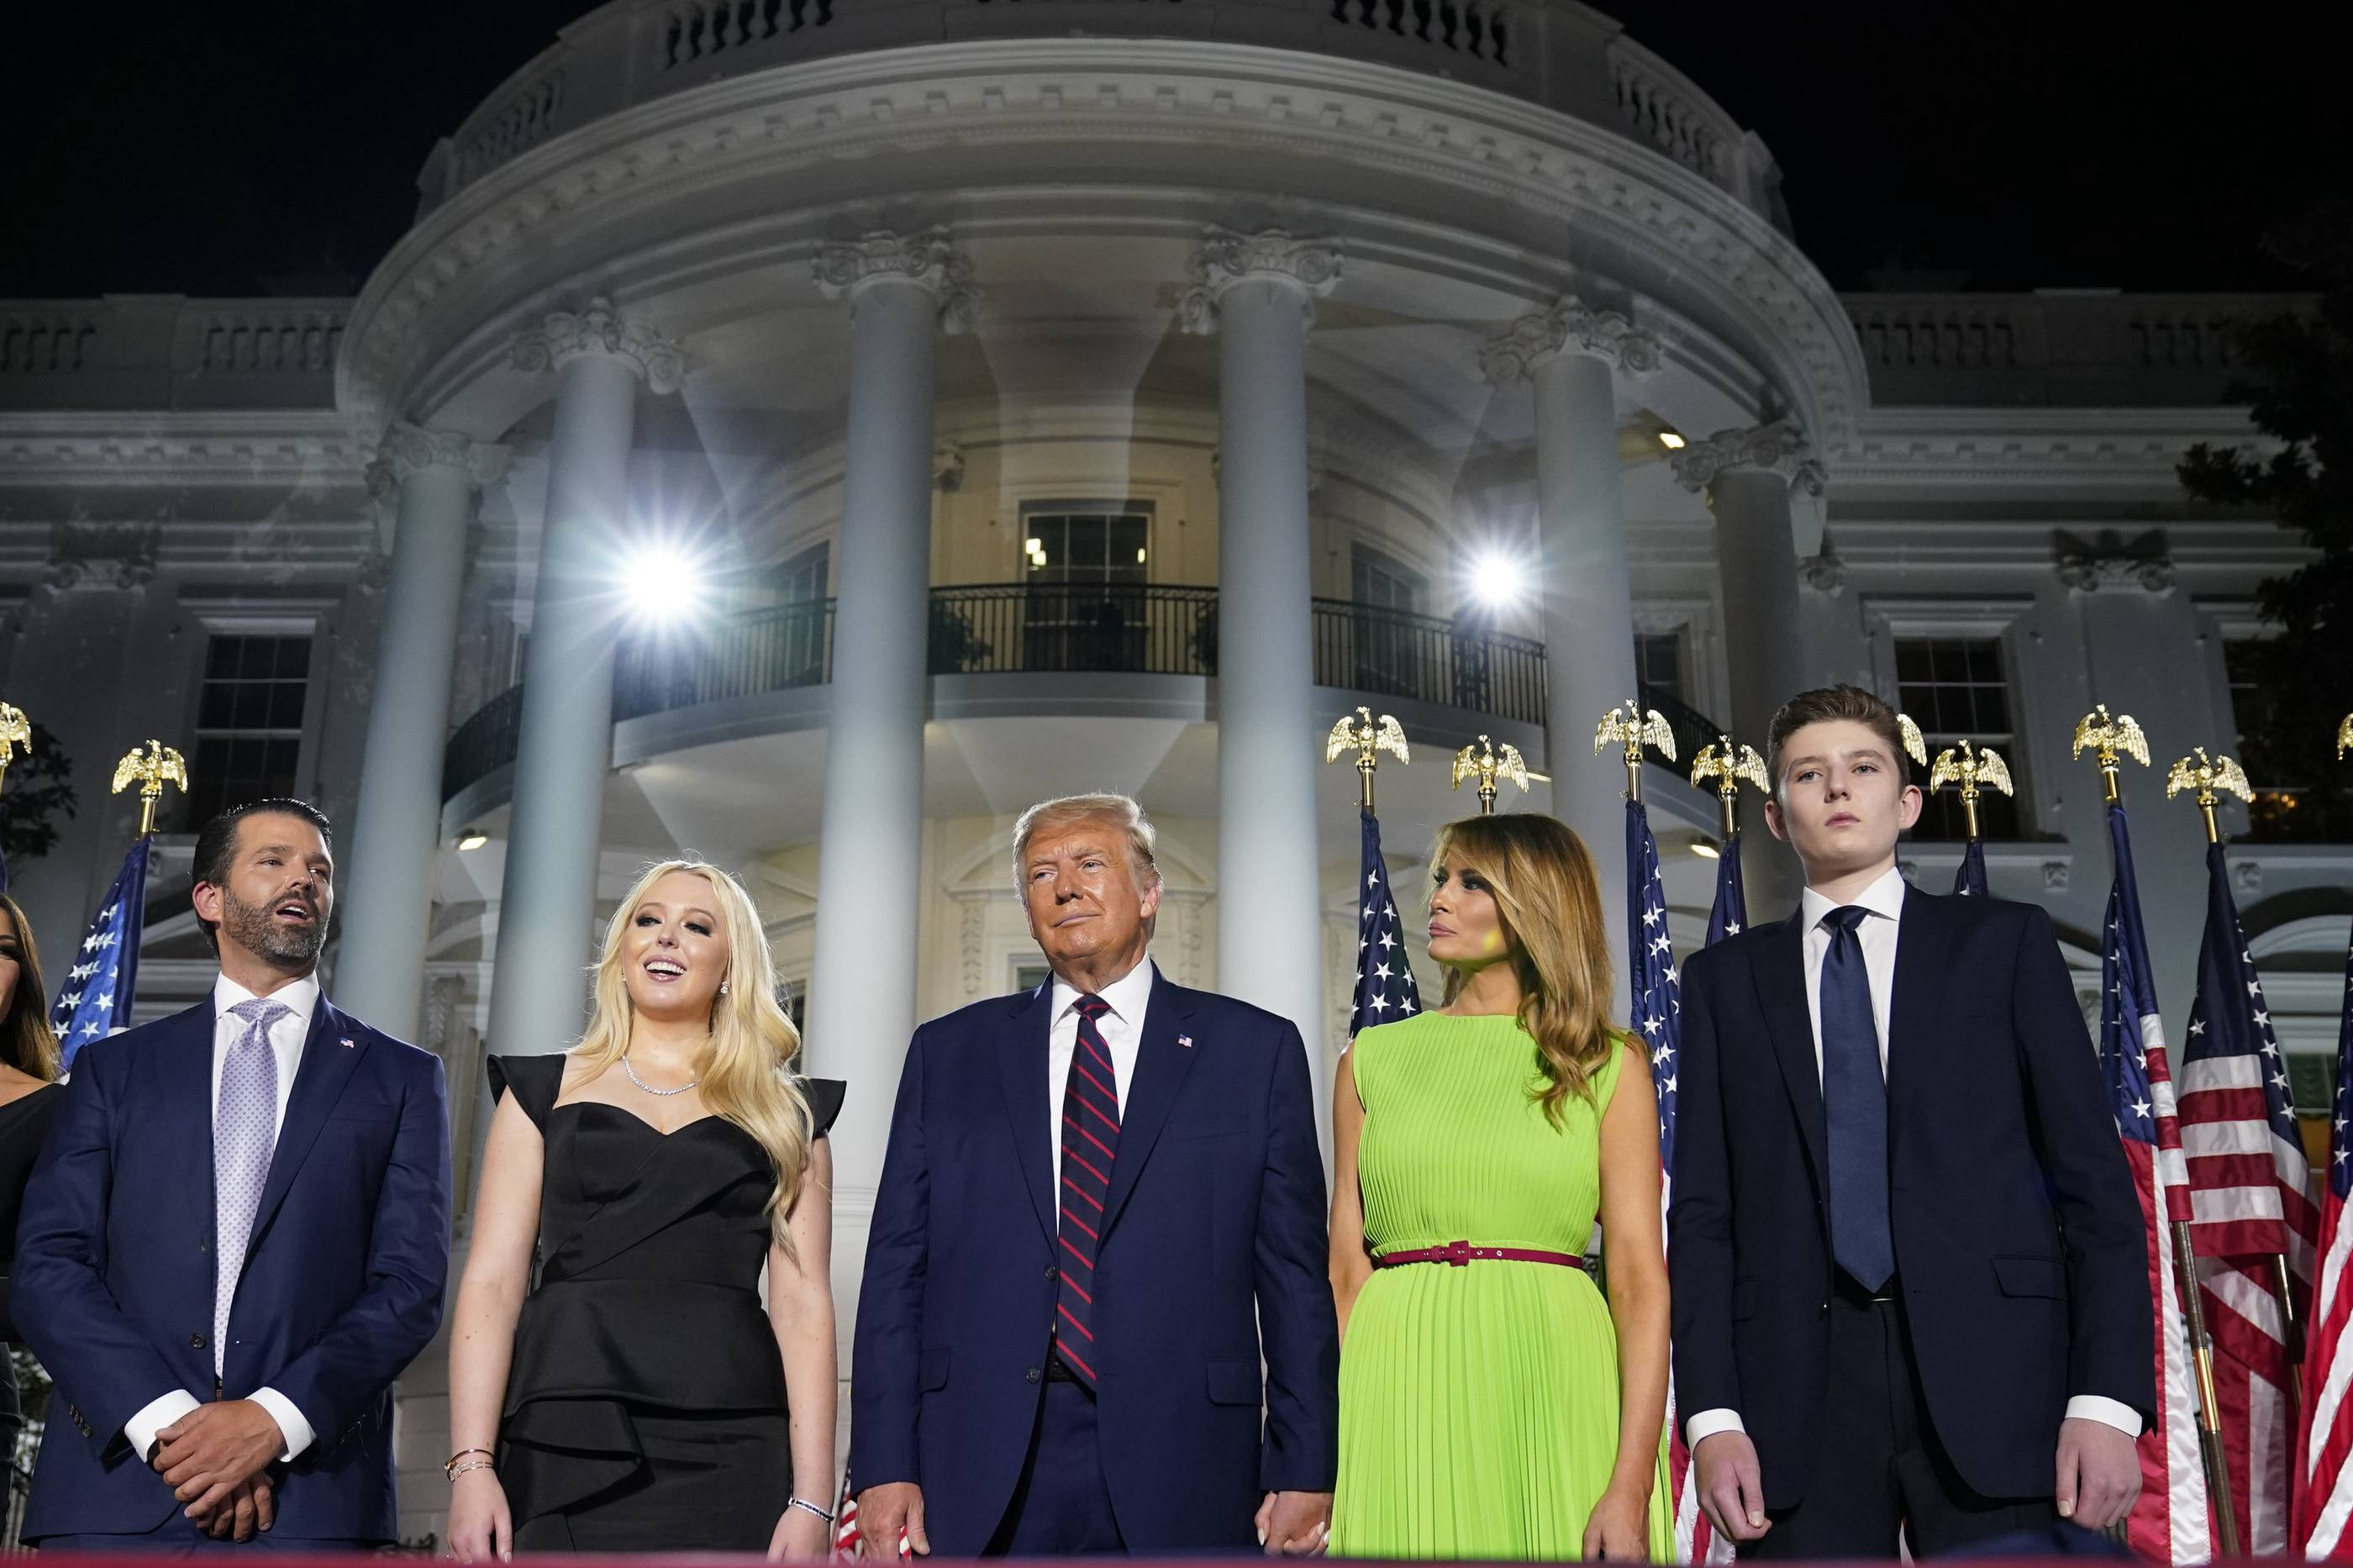 The Trump Family Looming in front of the White House after the final night of the RNC